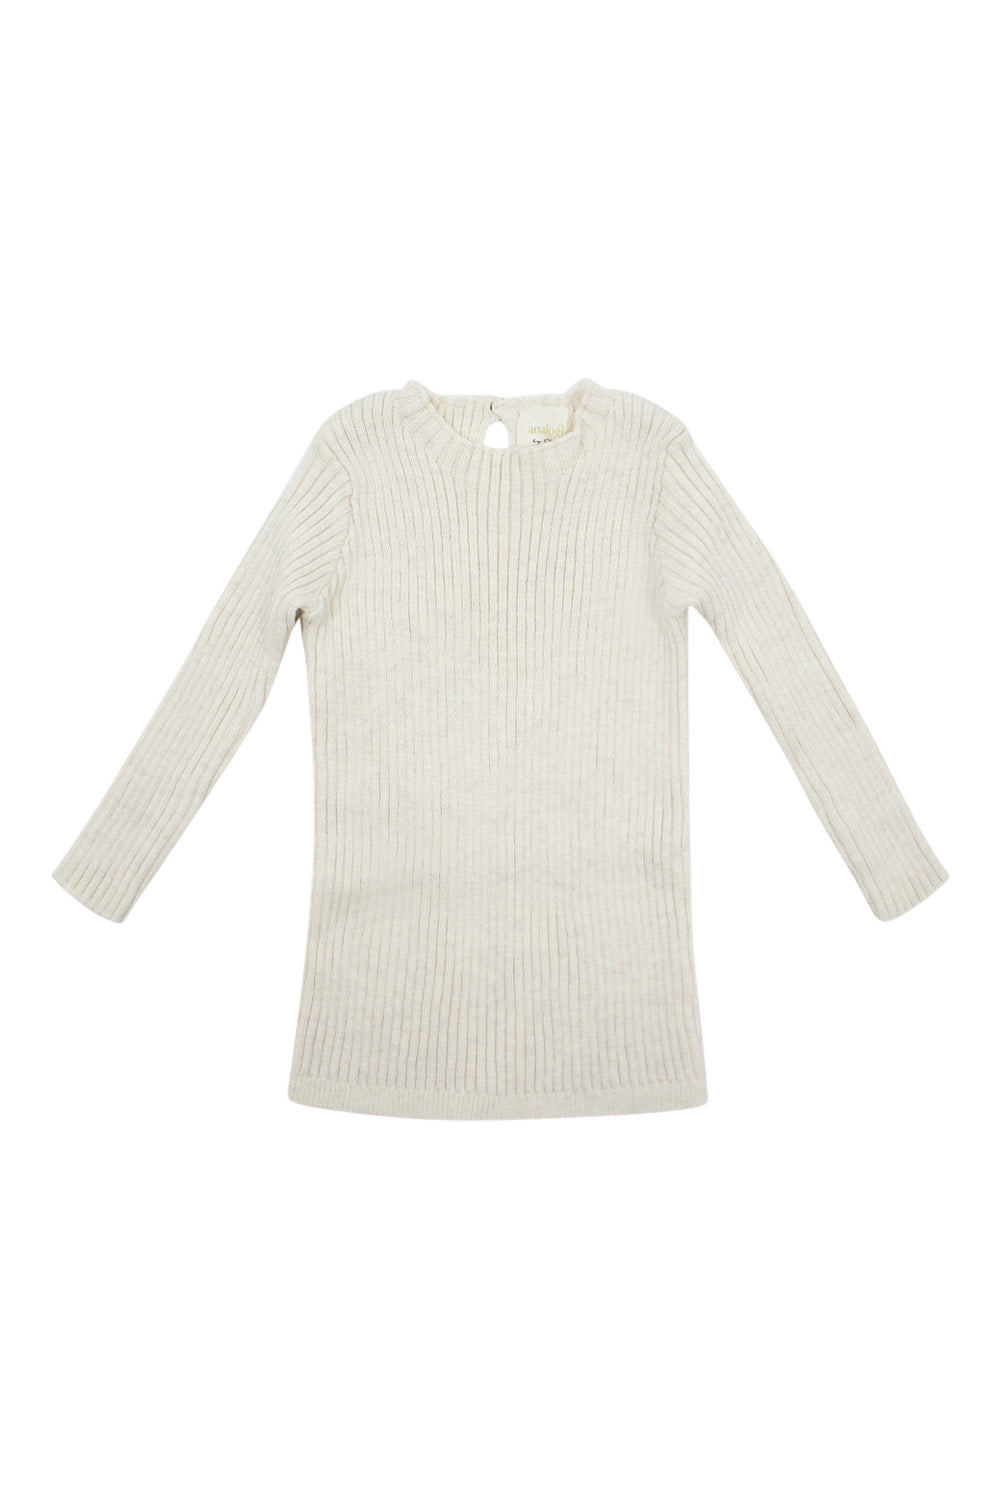 Analogie Vintage Ecru Long Sleeve Knit Sweater